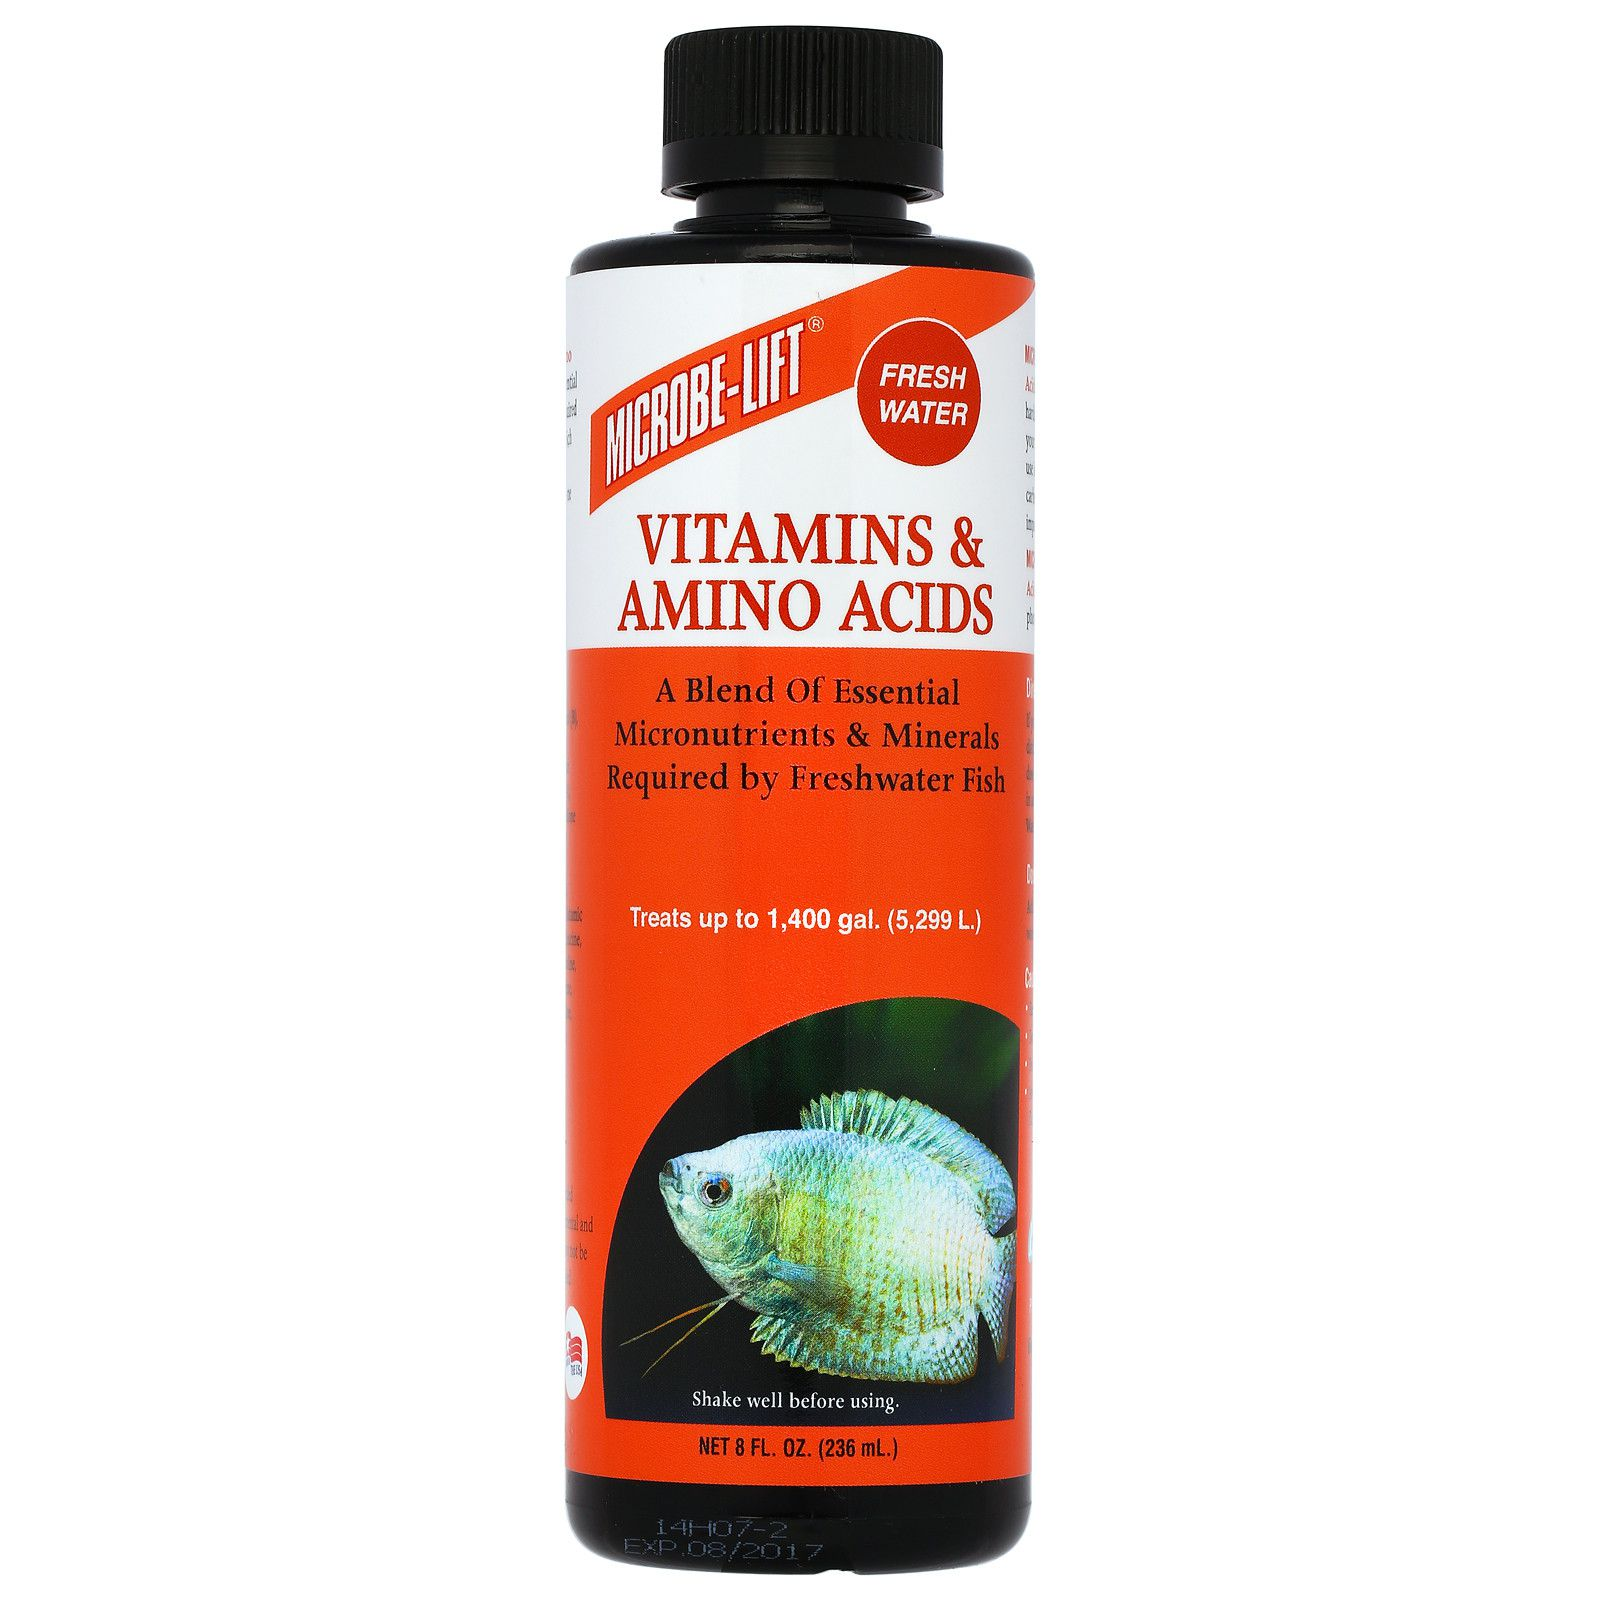 Microbe-Lift - Vitamins & Amino Acids - 473 ml